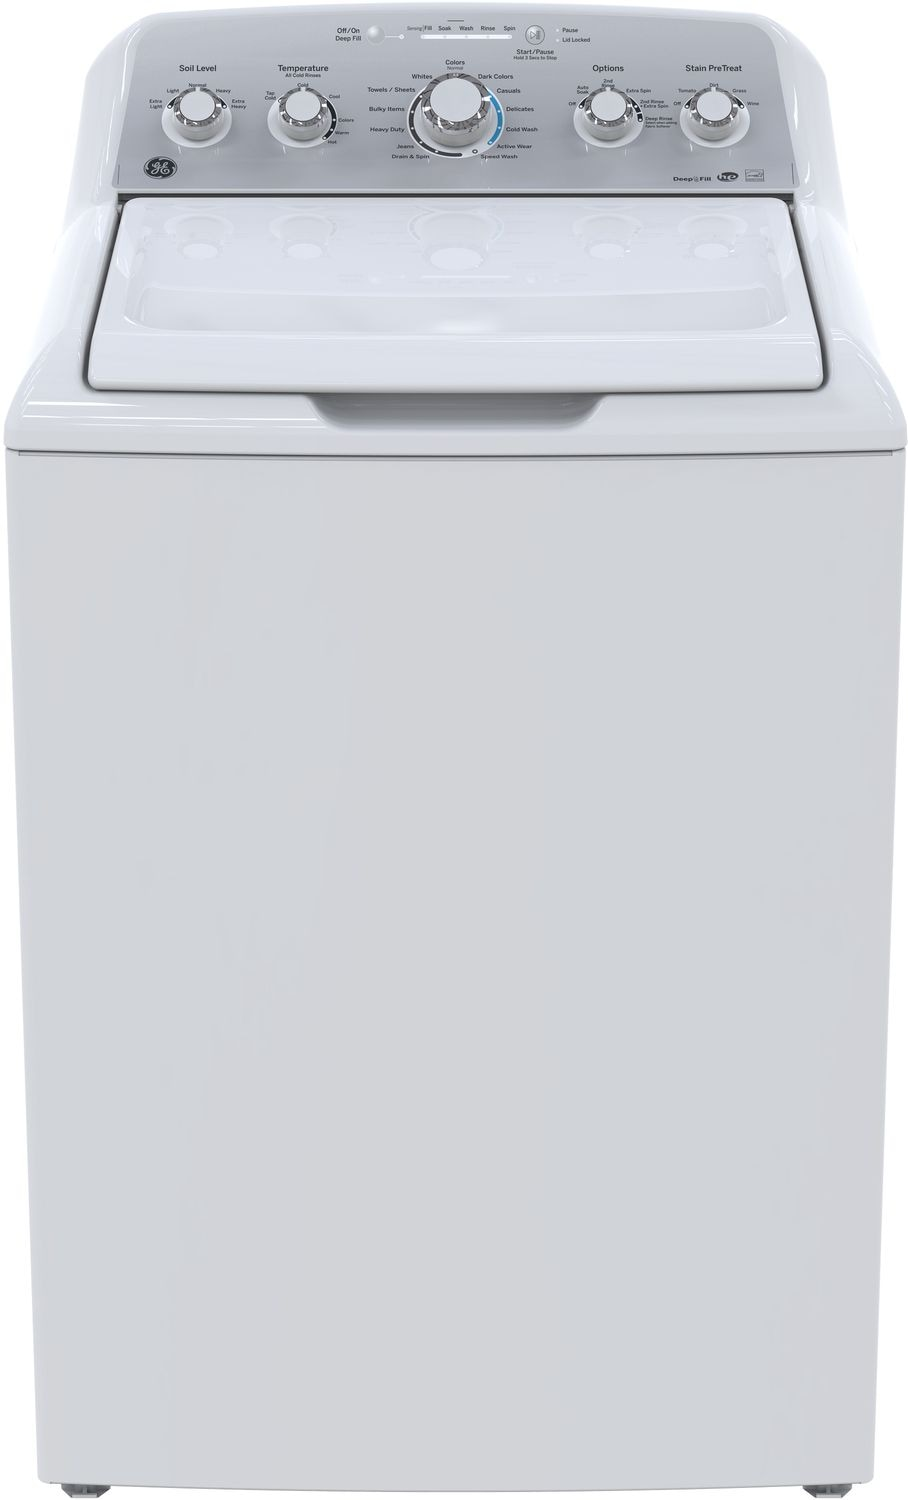 GE 4.9 Cu. Ft. Top-Load Washer – GTW485BMKWS